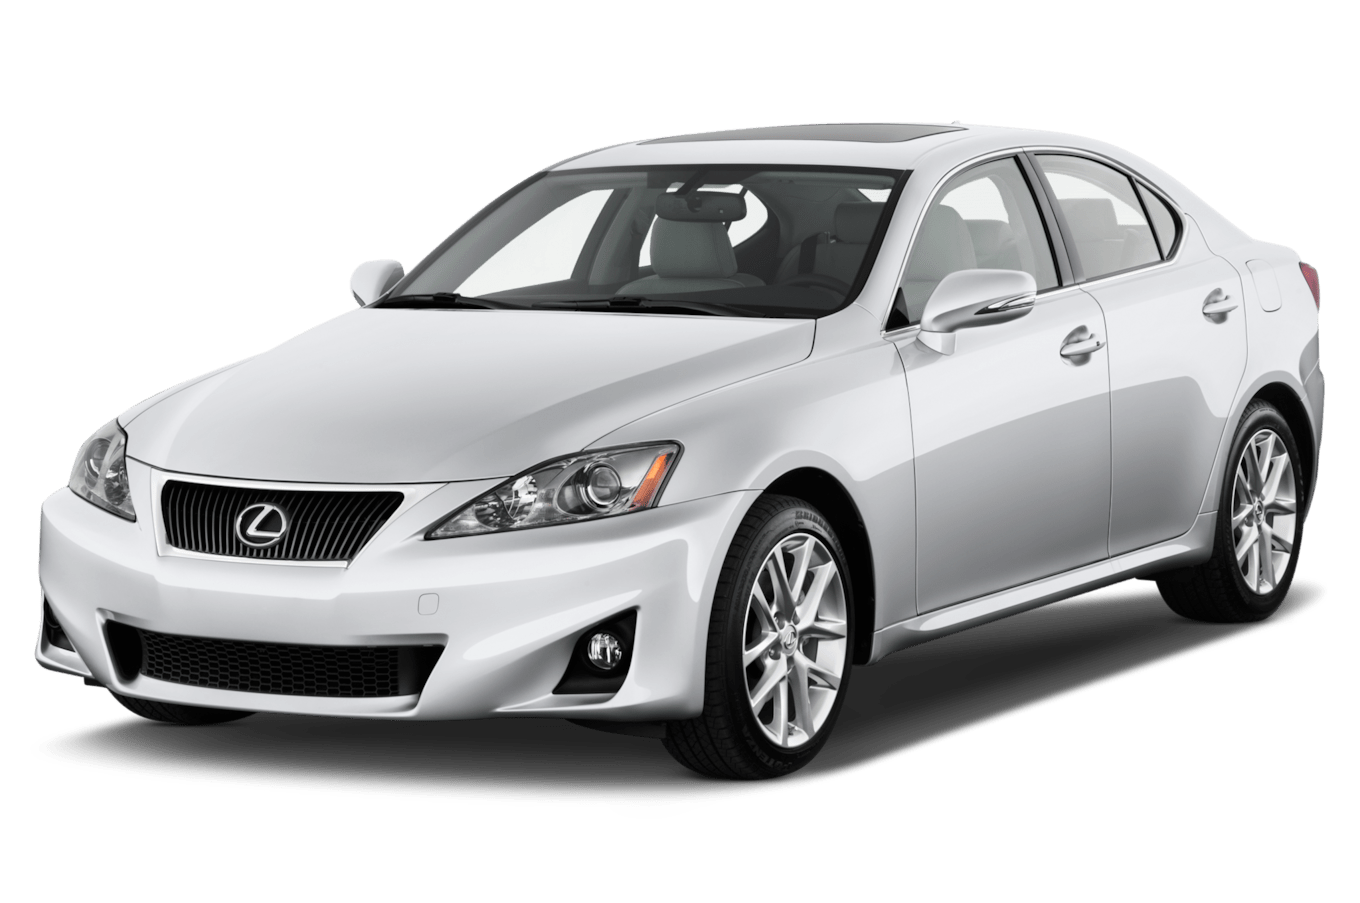 2013 Lexus IS350 Reviews and Rating